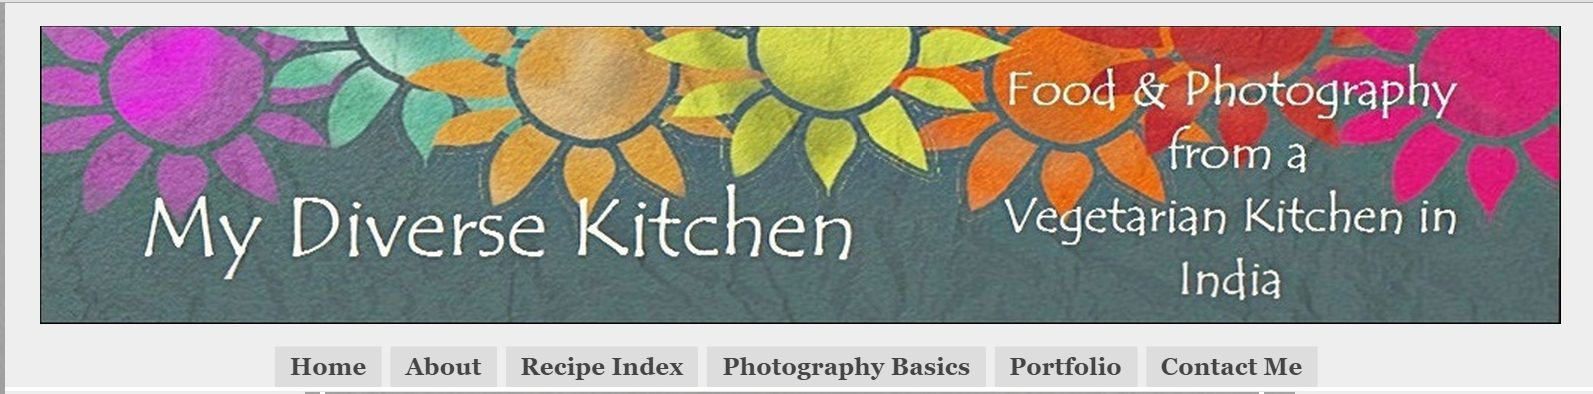 MyDiverse Kitchen